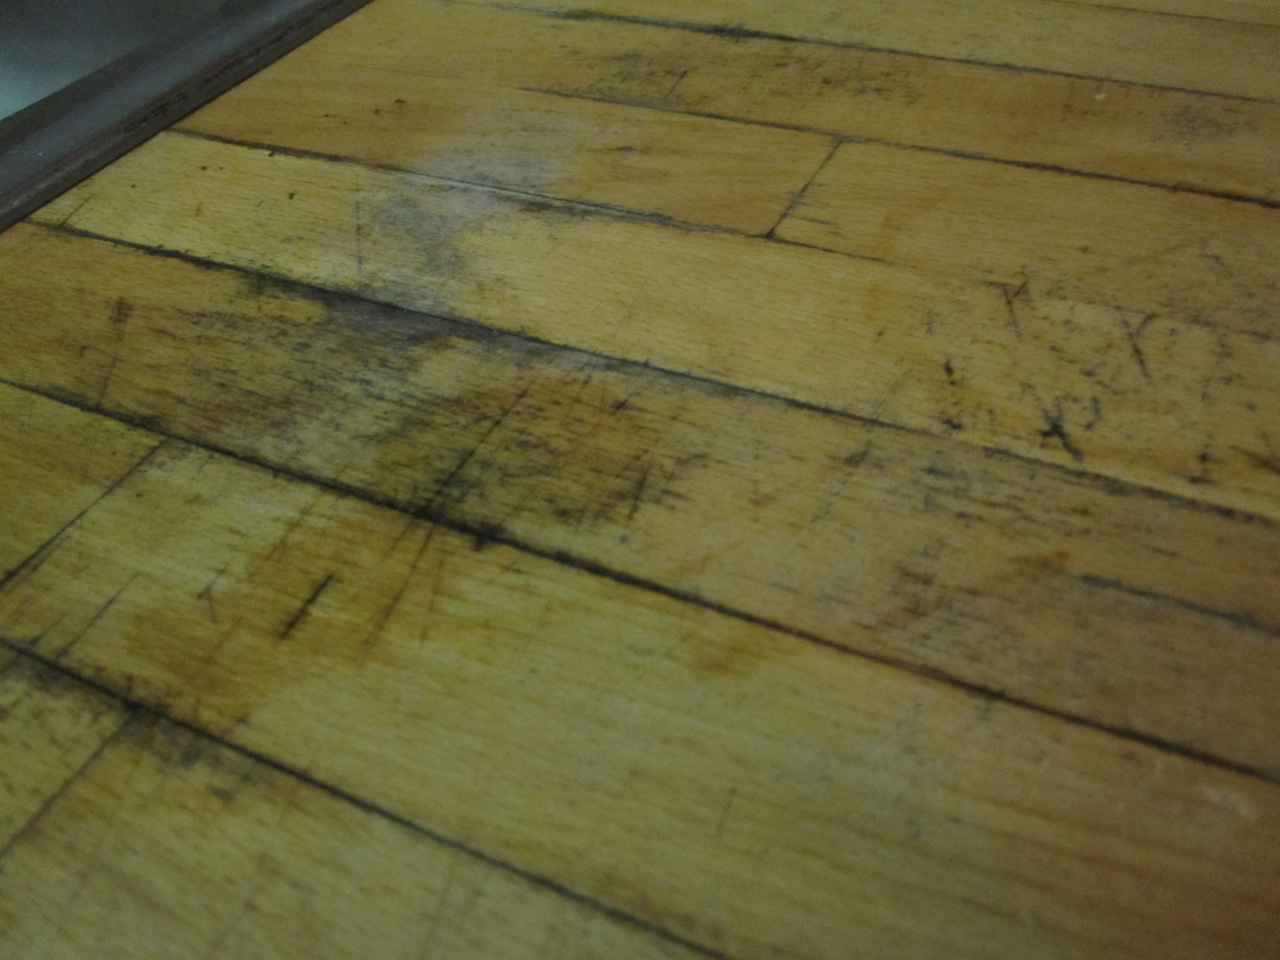 Superior Fix Moldy/stained Wood Counter Top? December 6, 2010 7:09 PM Subscribe